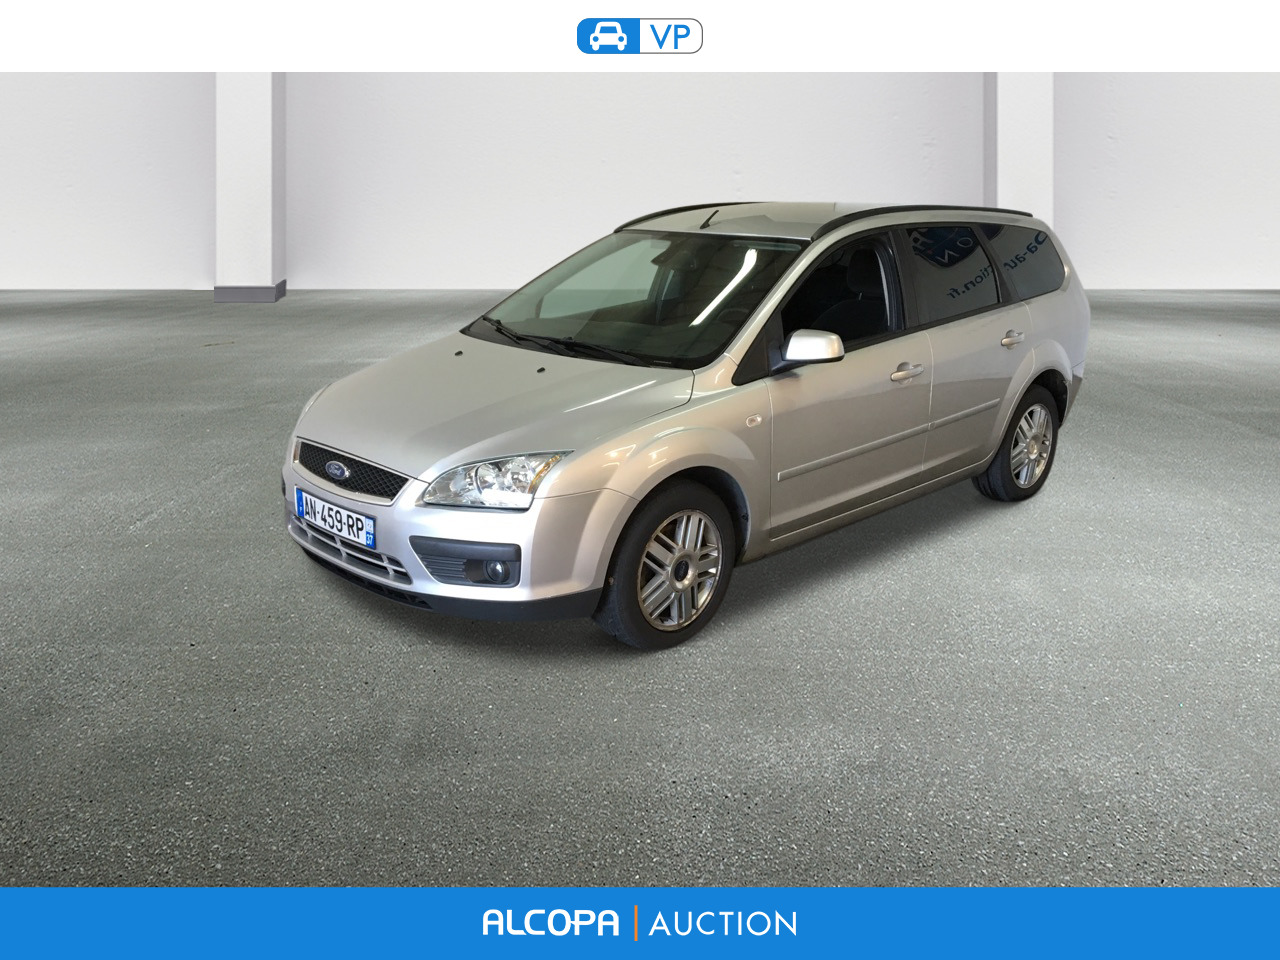 ford focus focus sw 1 8 tdci 115ch sport alcopa auction. Black Bedroom Furniture Sets. Home Design Ideas